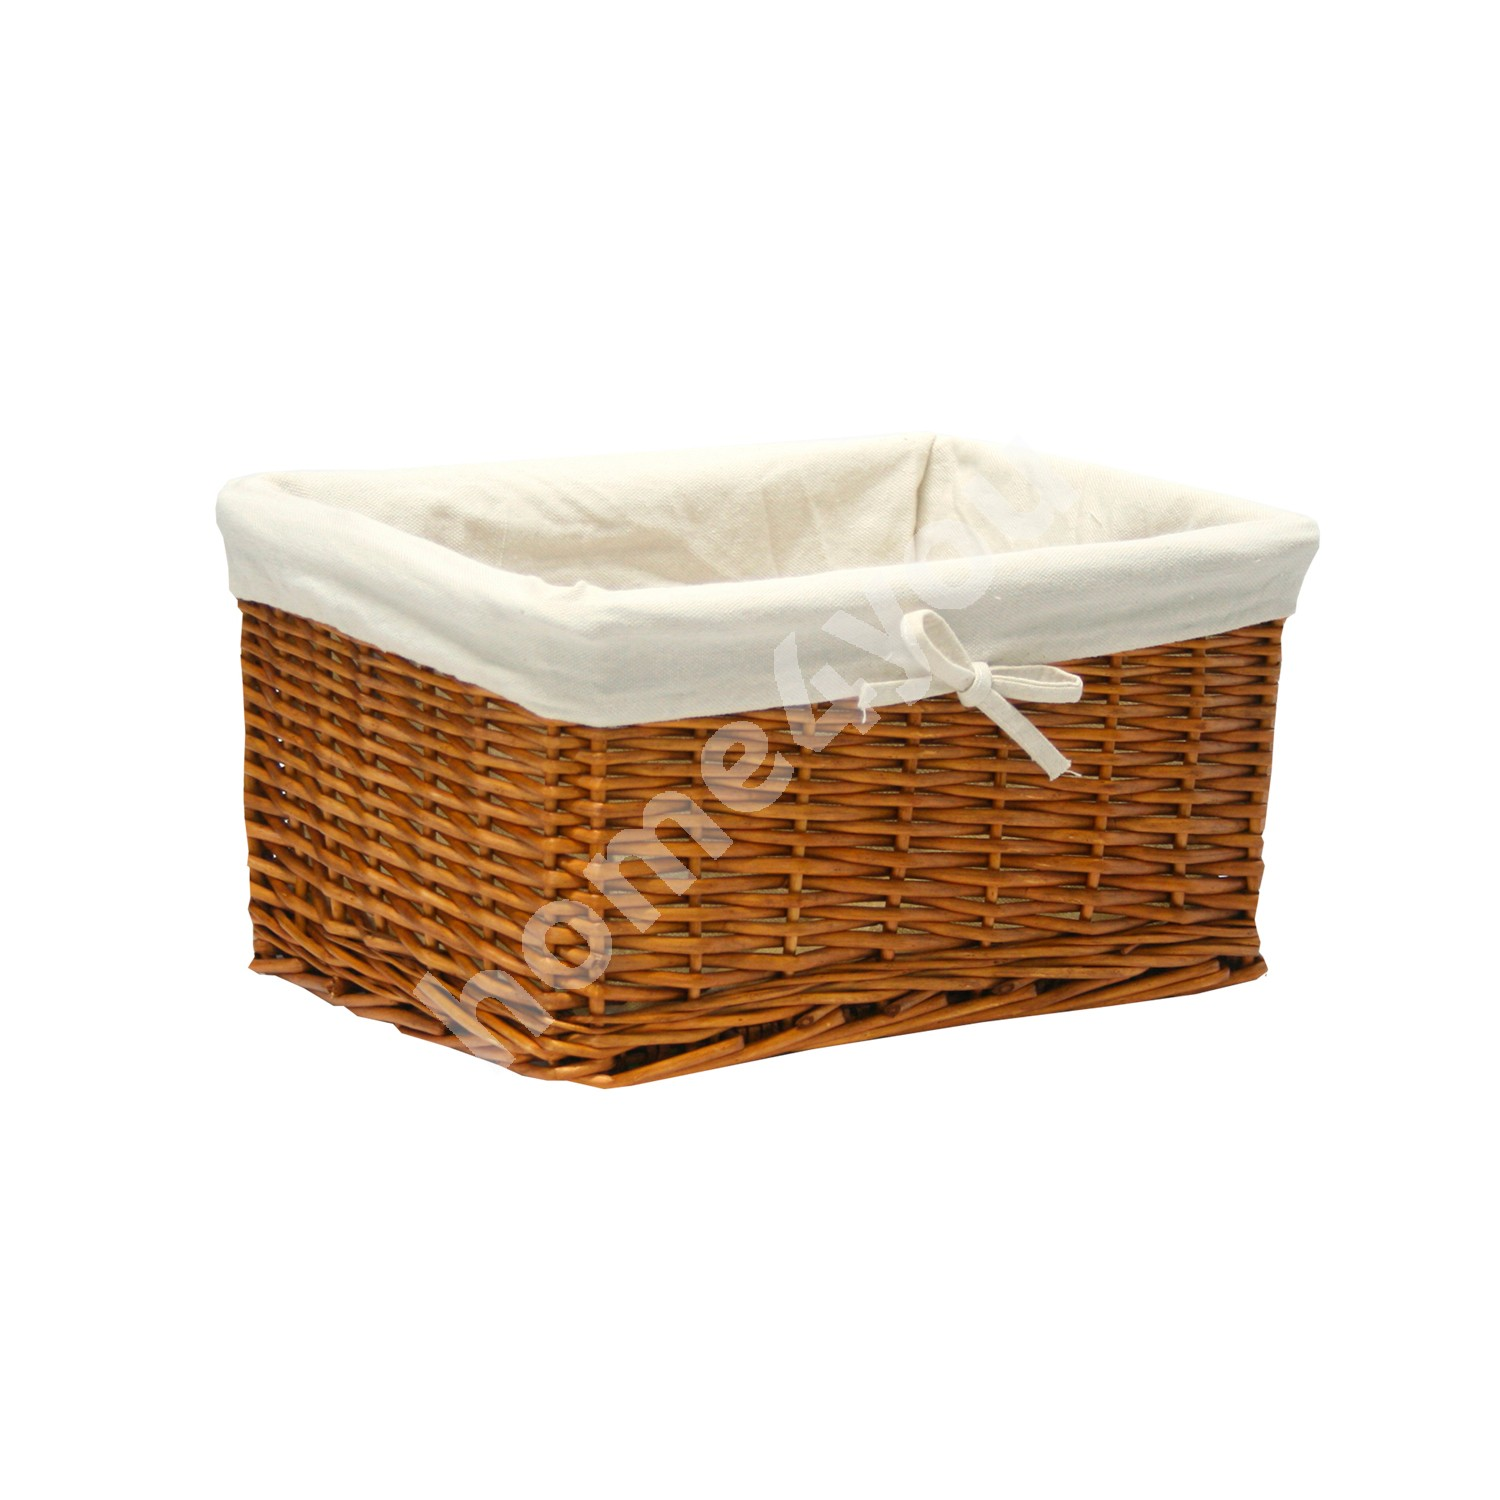 Basket MAX 30x21x18cm, weave, color: light brown, with fabric